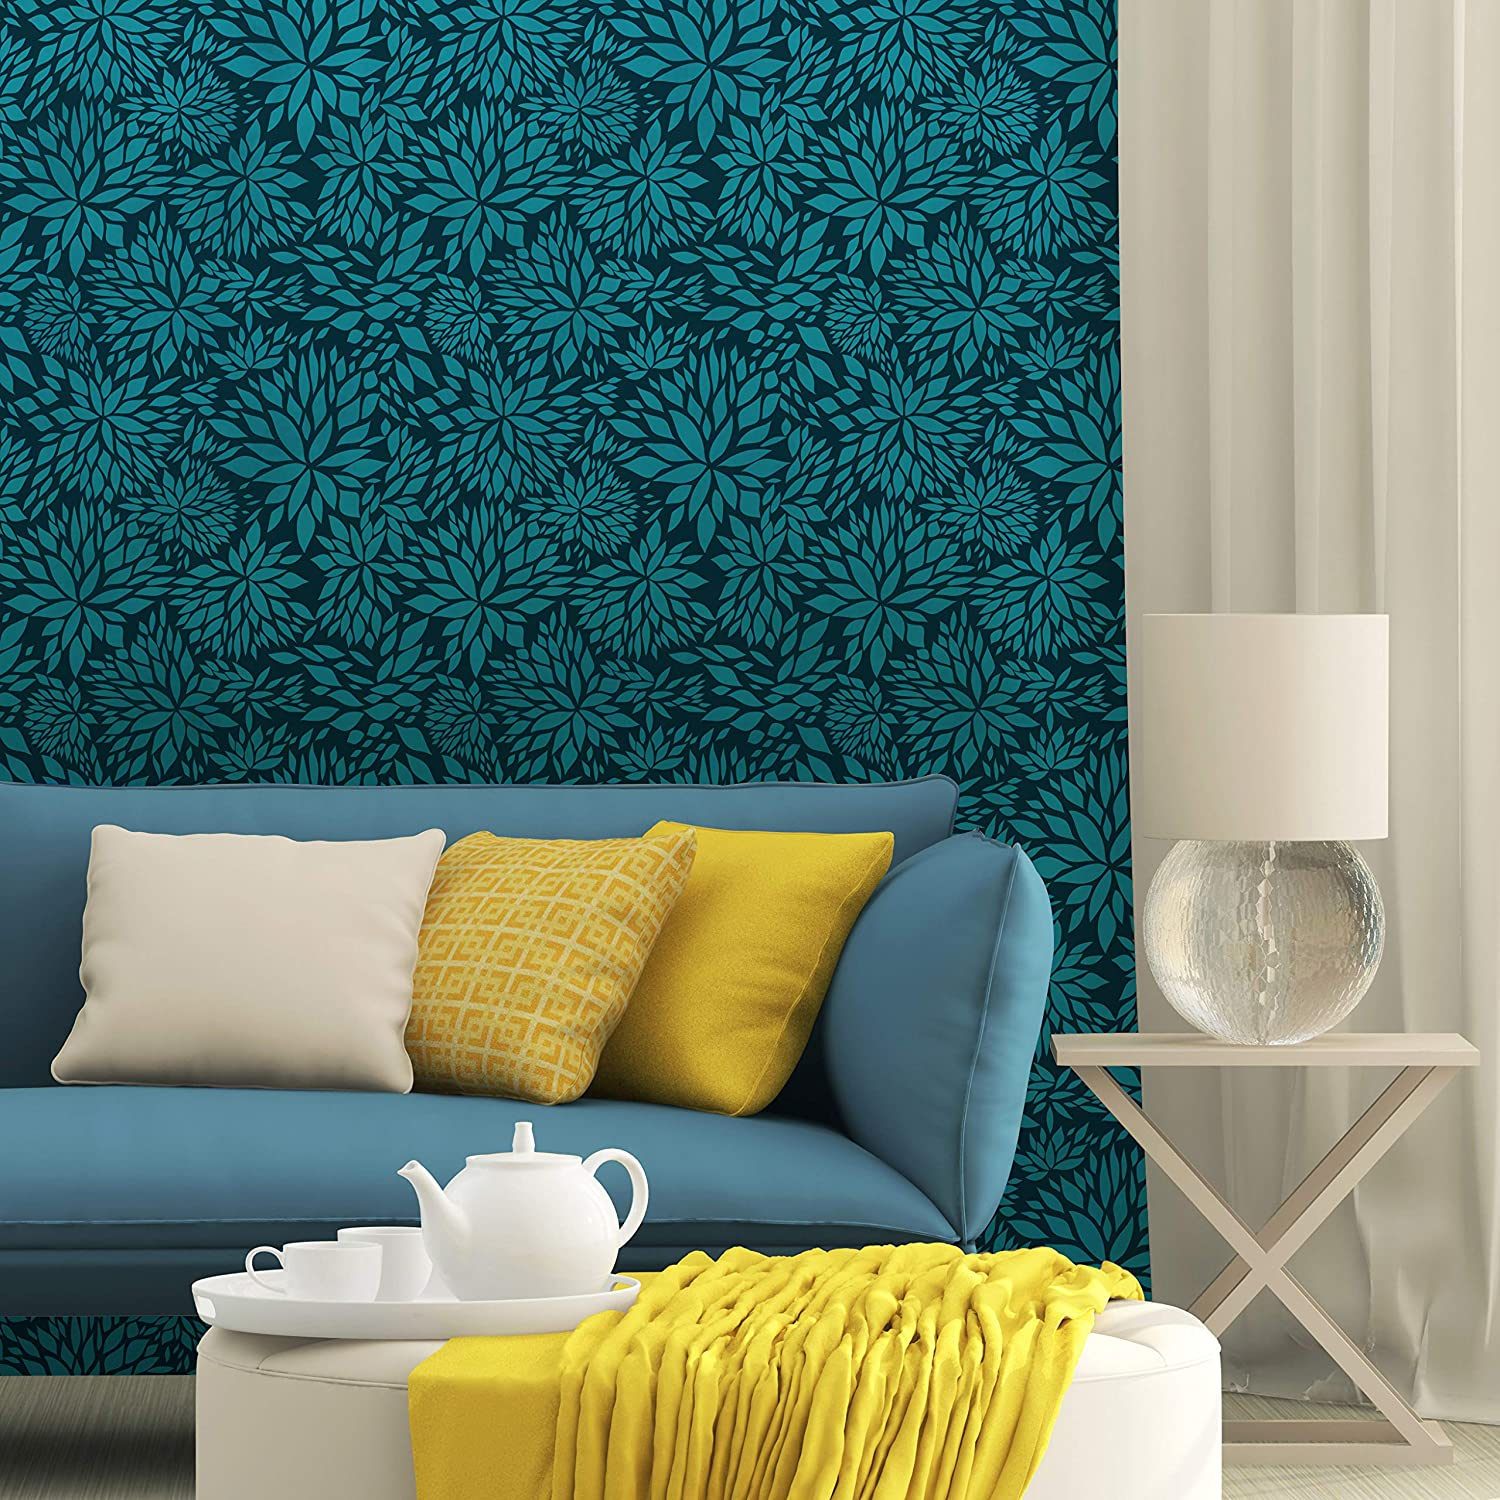 Amazon Com Petal Play Floral Wall Stencil For Painting A Modern